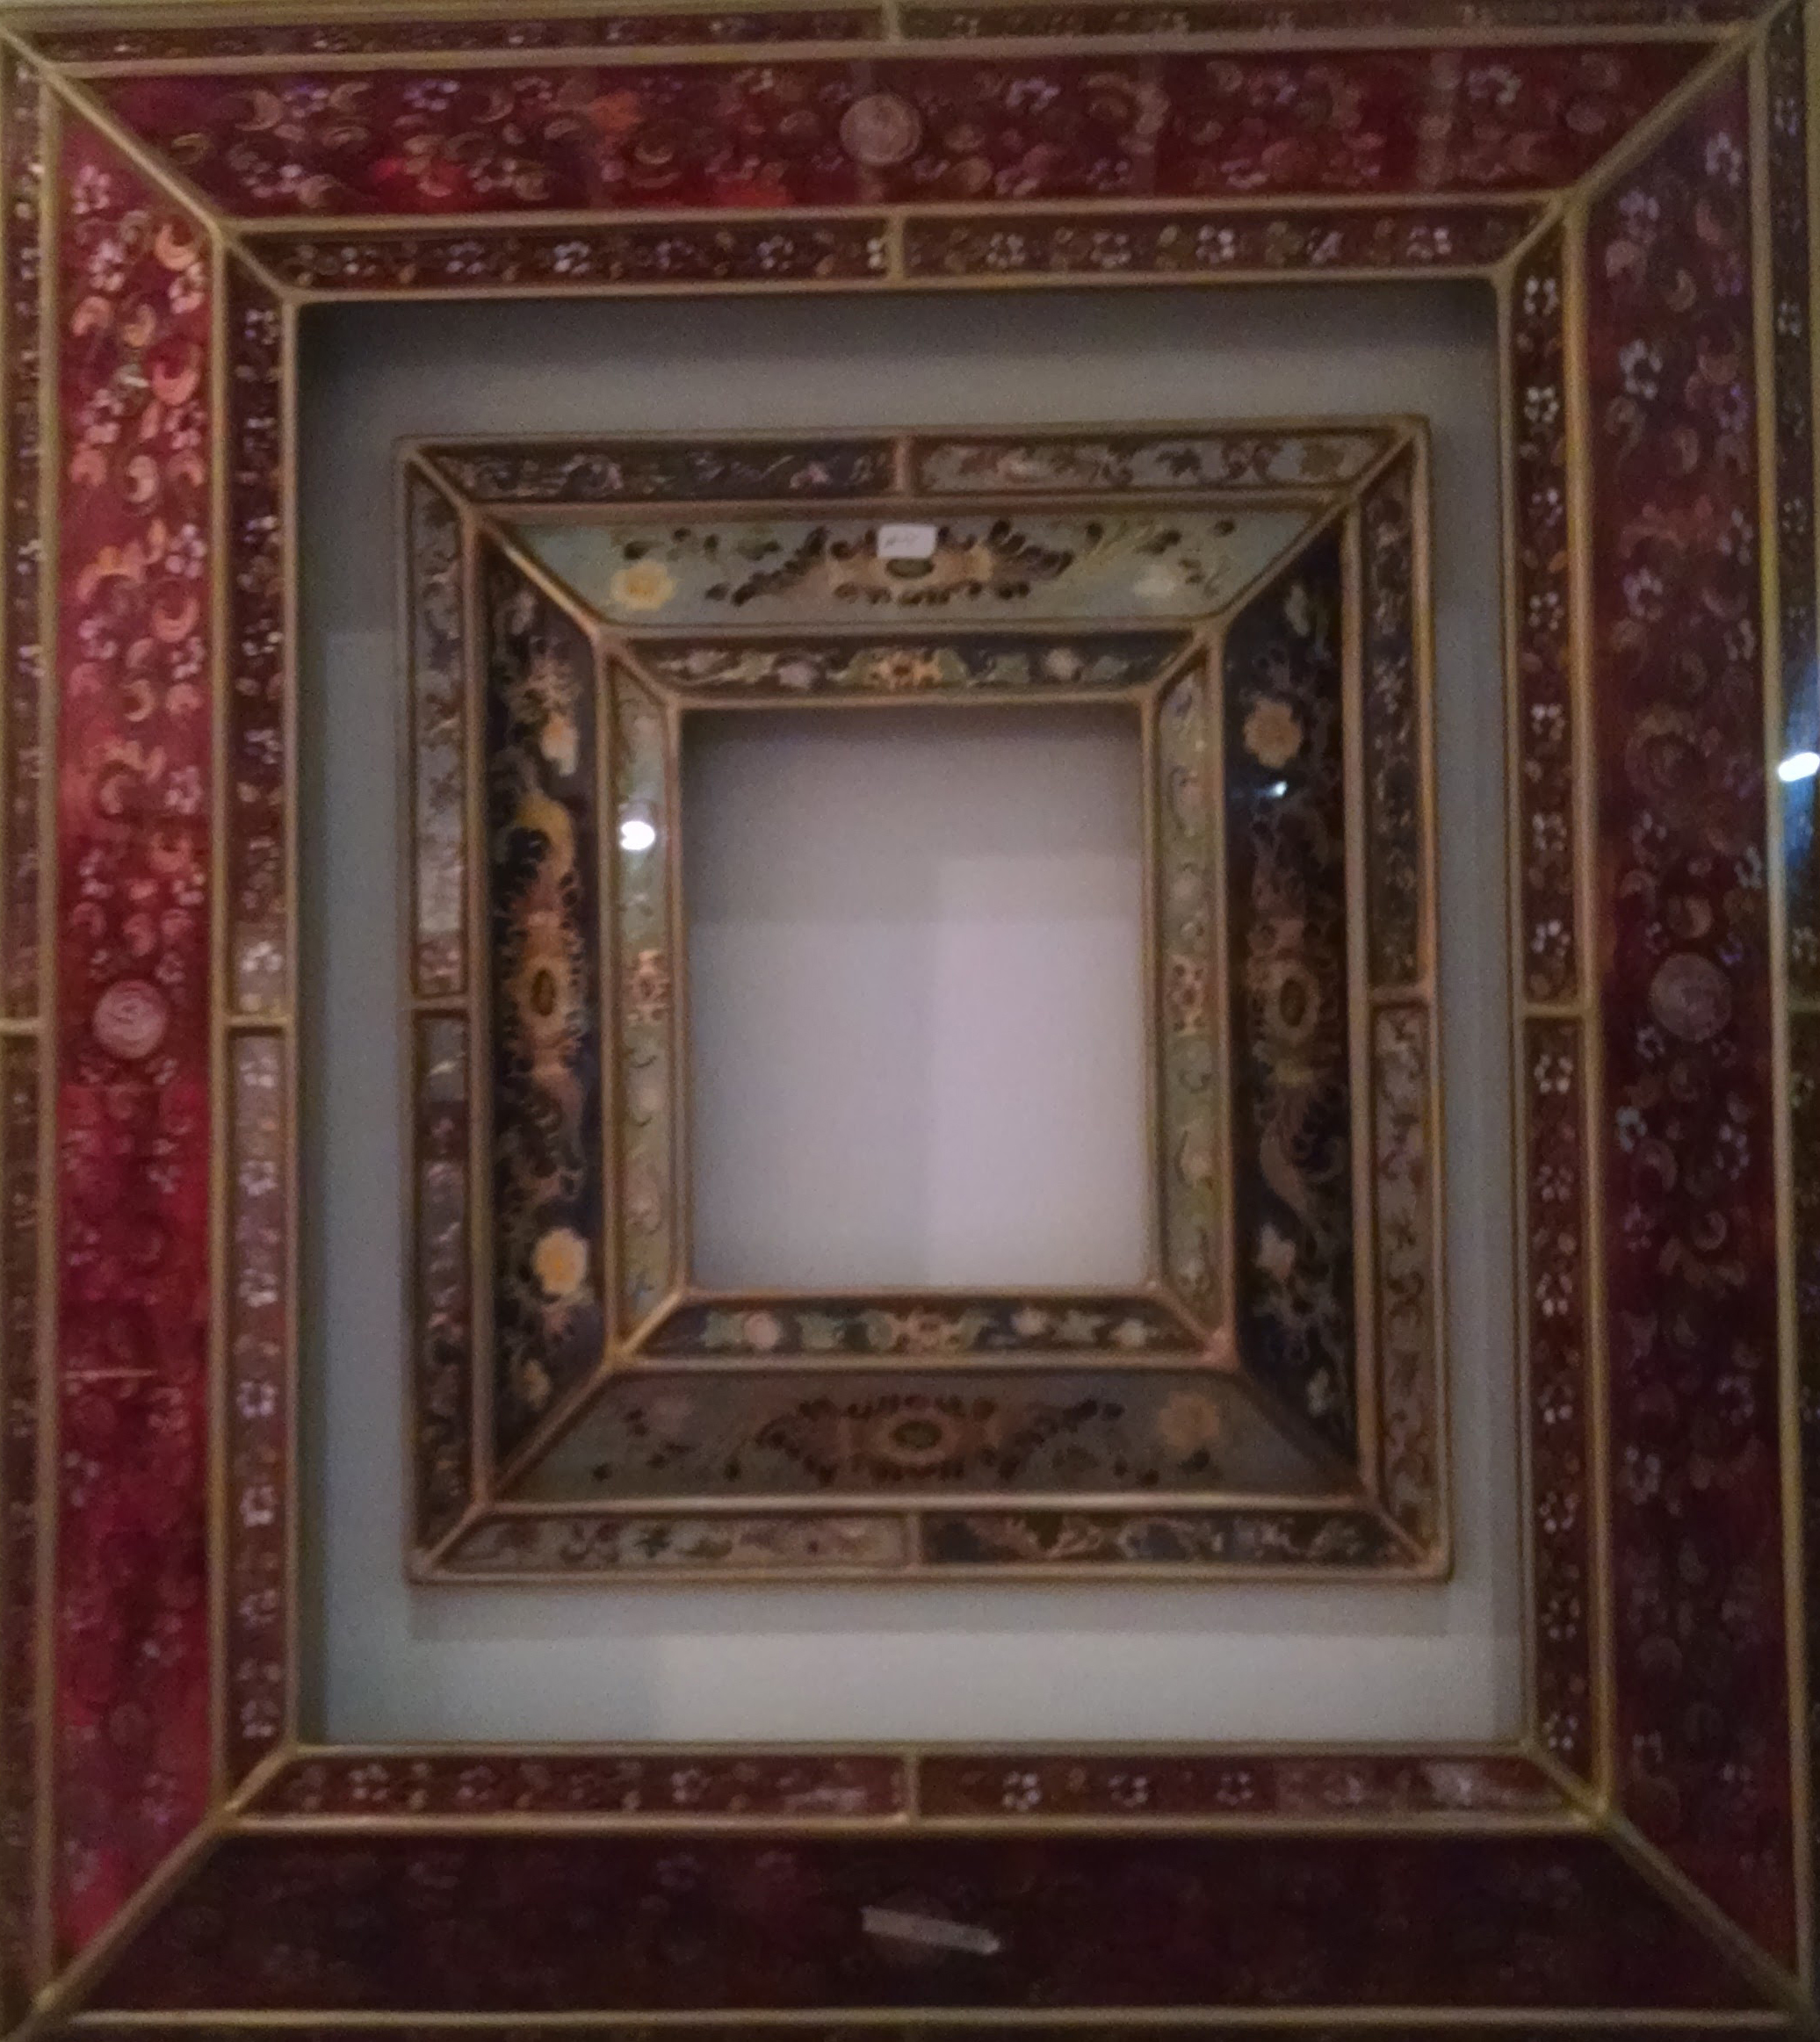 Readymade Wall Frames - Allan Jeffries Framing